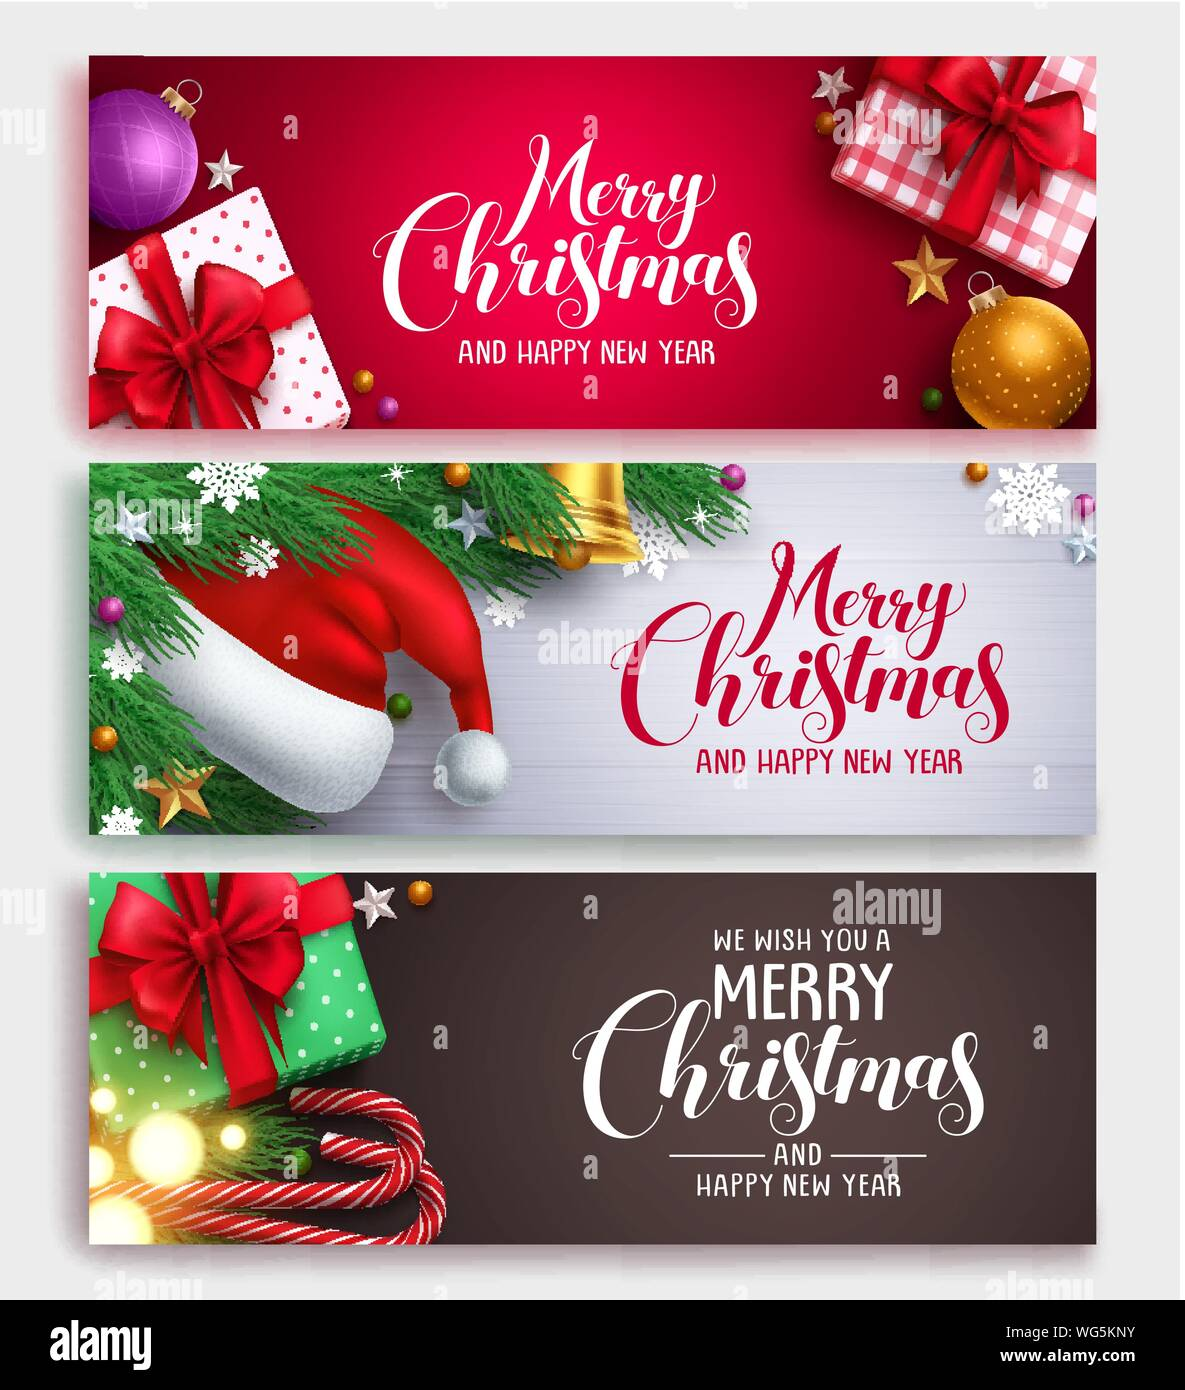 Christmas Vector Banner Design Set With Colorful Backgrounds Christmas Elements And Christmas Greeting Text In White Space Vector Illustration Stock Vector Image Art Alamy